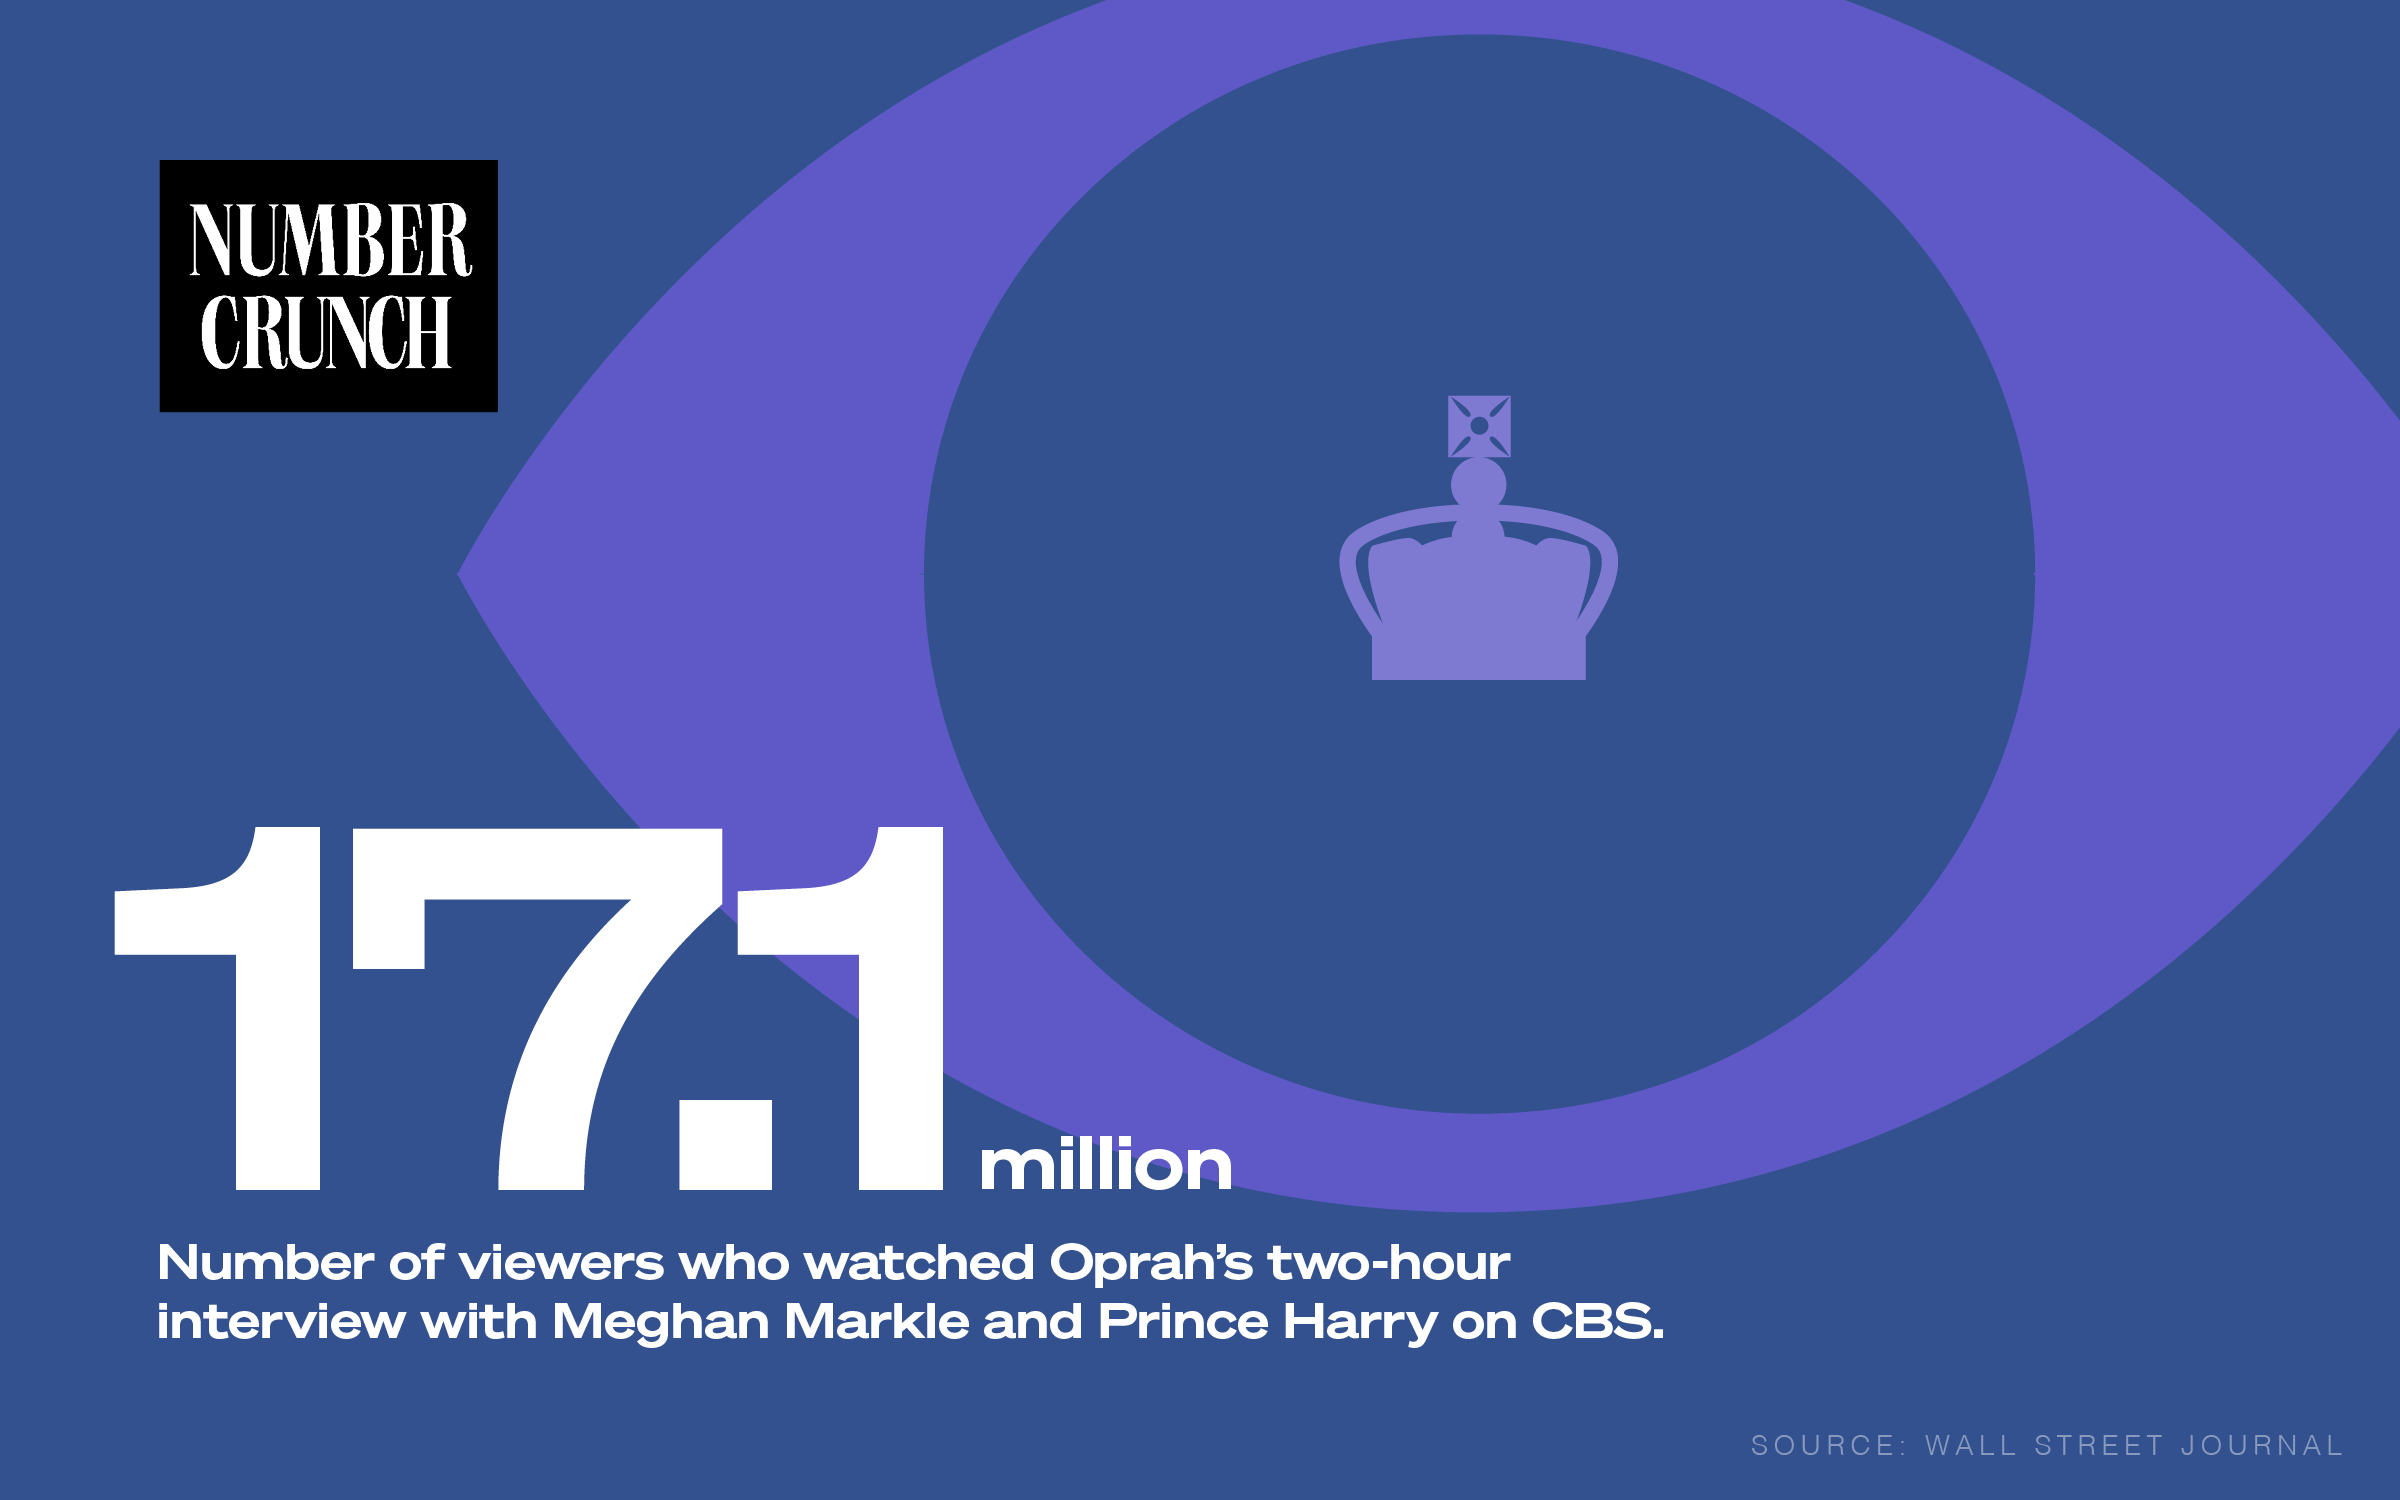 """Number Crunch logo above the text """"17.1 million: Number of viewers who watched Oprah's two-hour interview with Meghan Markle and Prince Harry on CBS. Source: Wall Street Journal."""" Behind the copy, there is an illustration of a giant eye with an outline of the crown in its iris."""